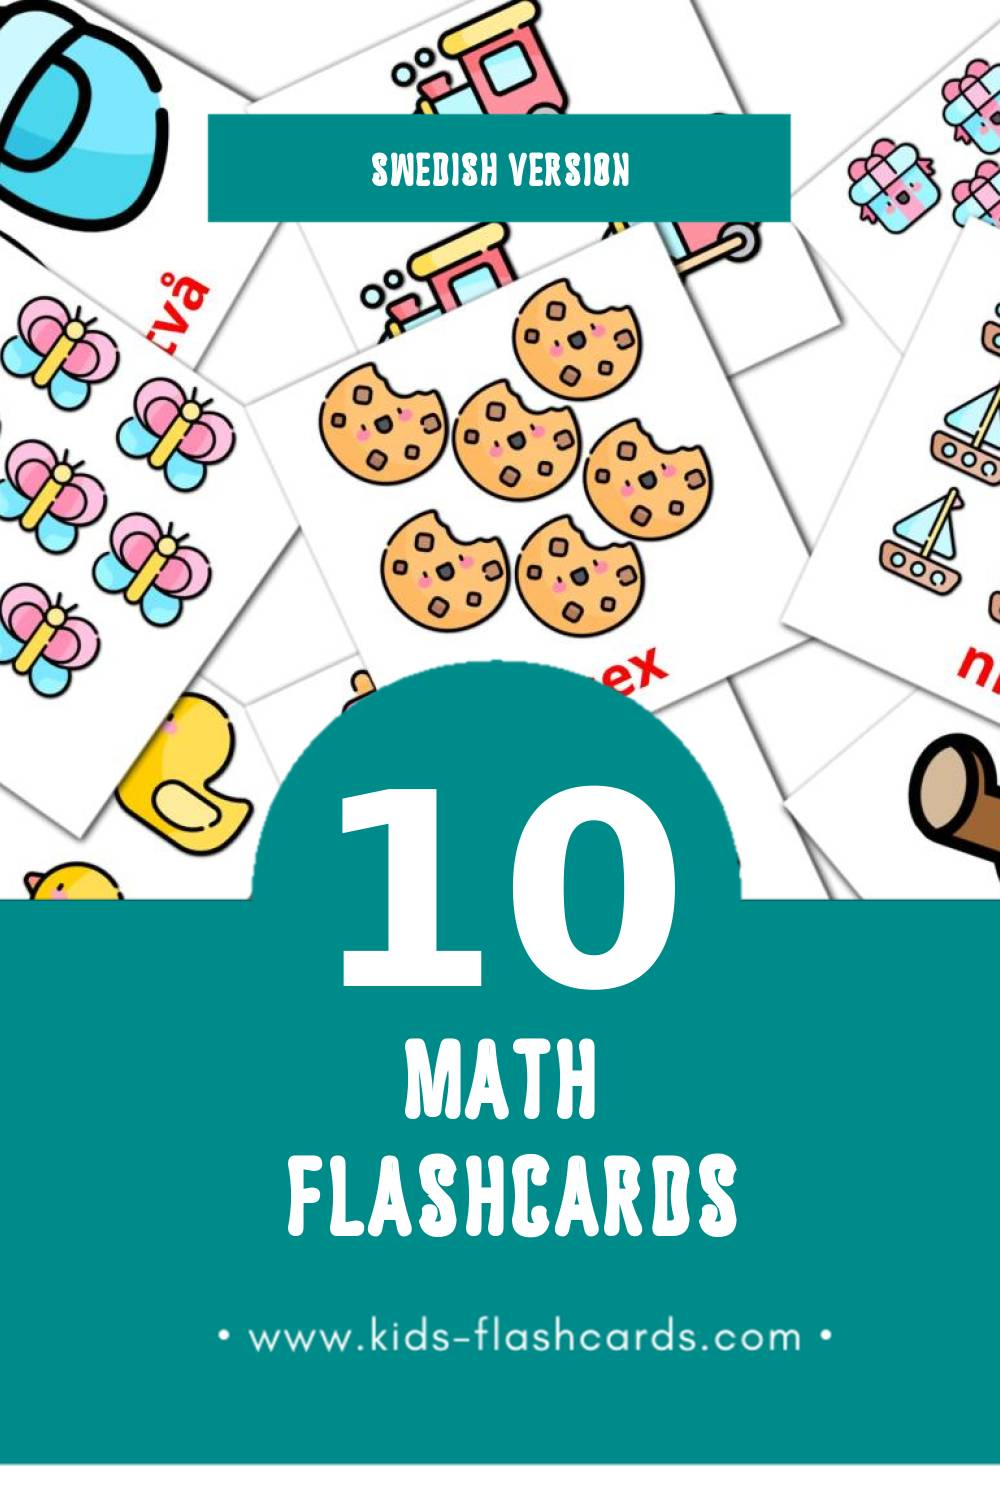 Visual Matematik Flashcards for Toddlers (10 cards in Swedish)